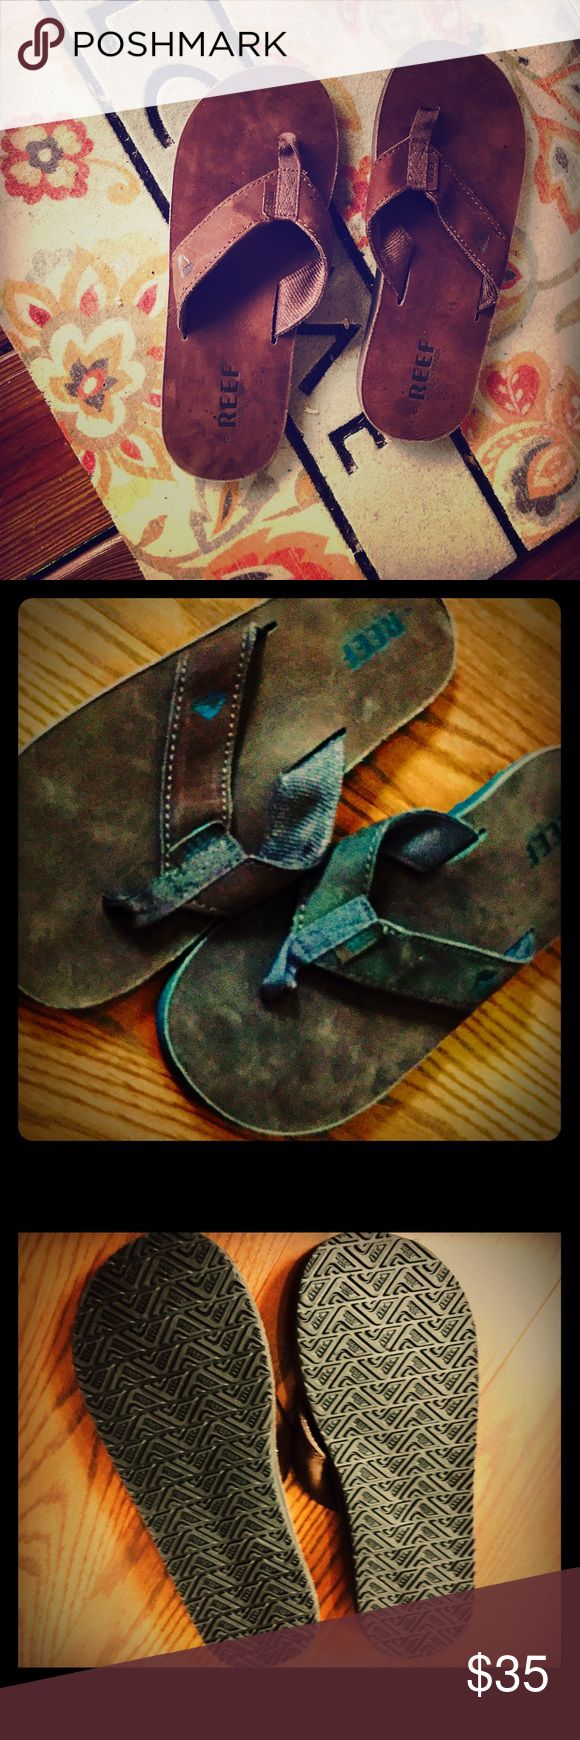 Men's (unisex?) REEF Flip Flops Brand New Size 9.5  Bought for my hubs - too small Reef Shoes Sandals